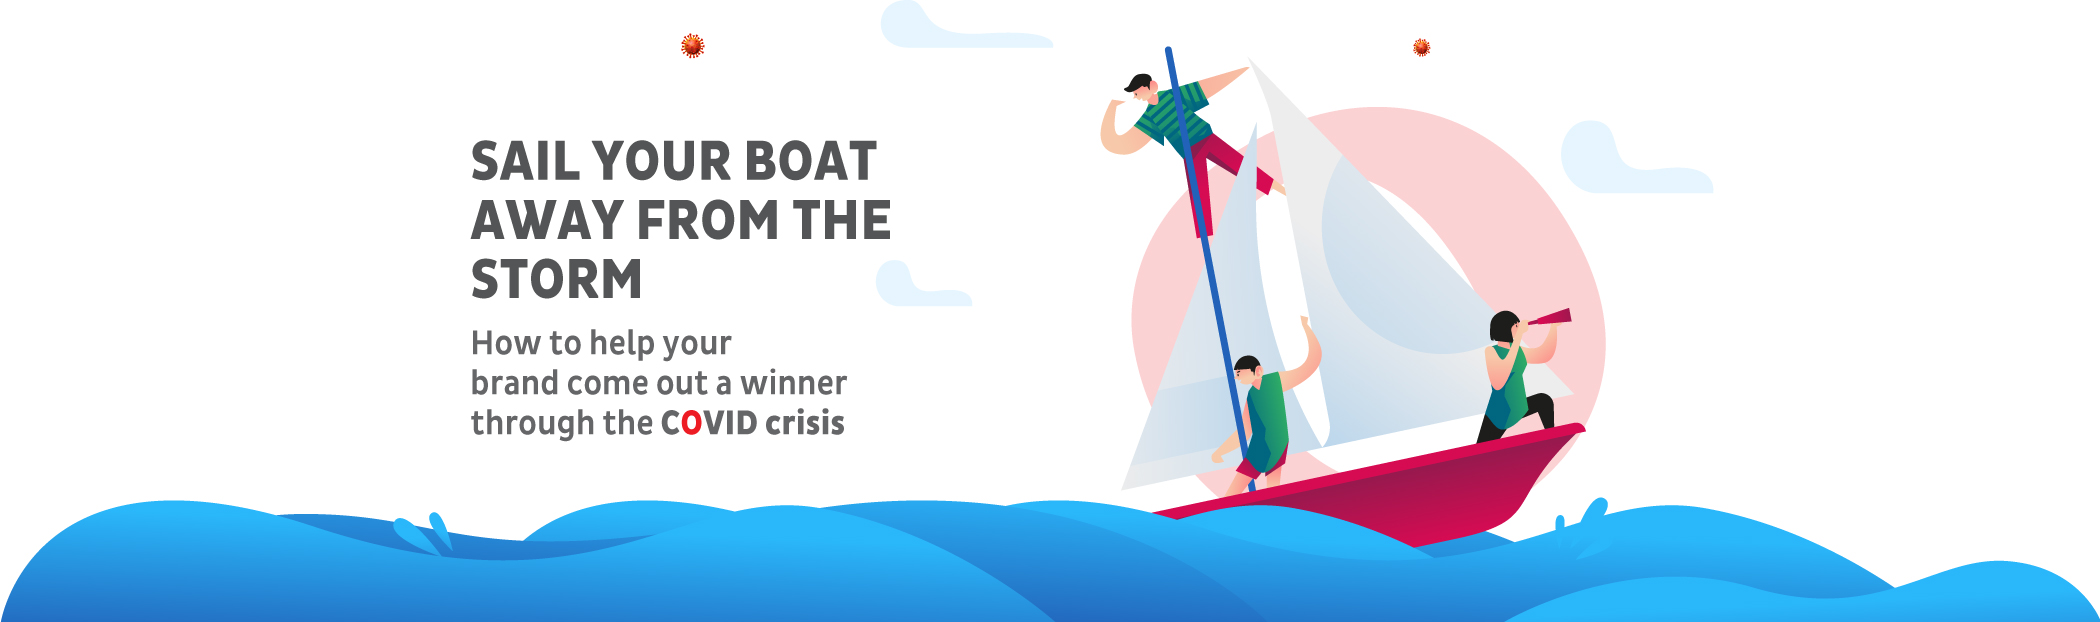 Sail your boat away from the storm: How to help your brand come out a winner through the COVID crisis